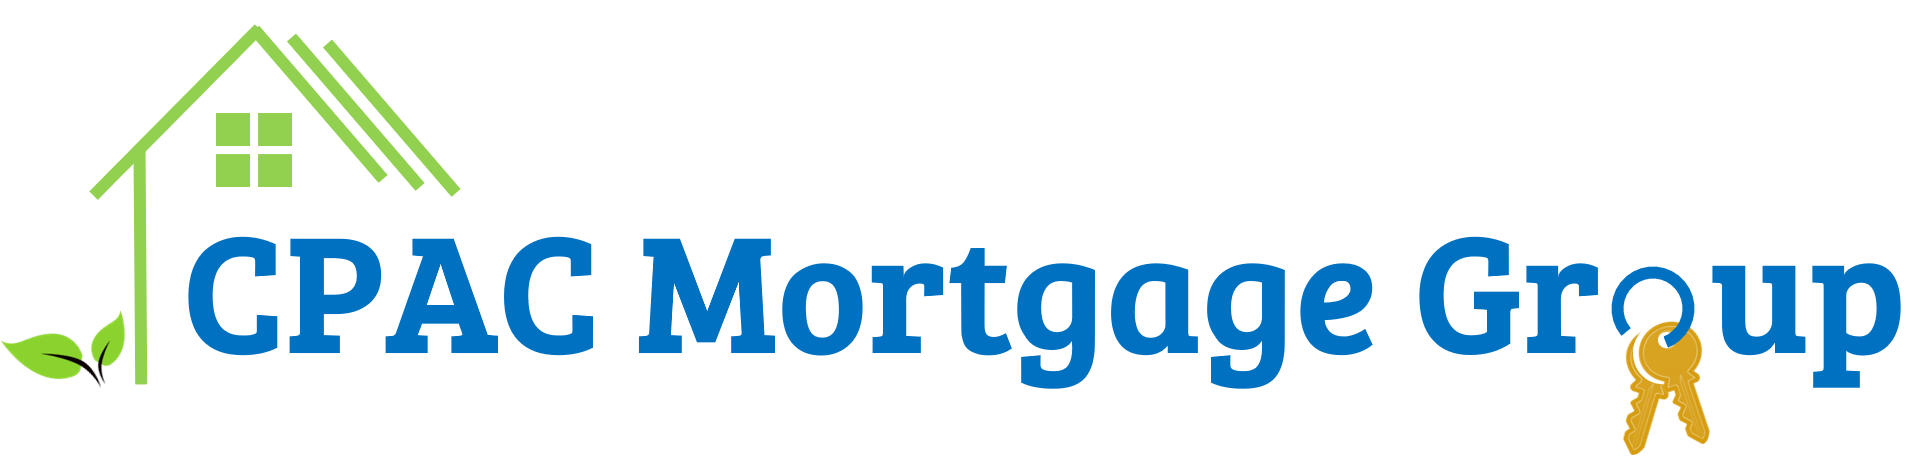 CPAC-Mortgage-Group-Logo-1